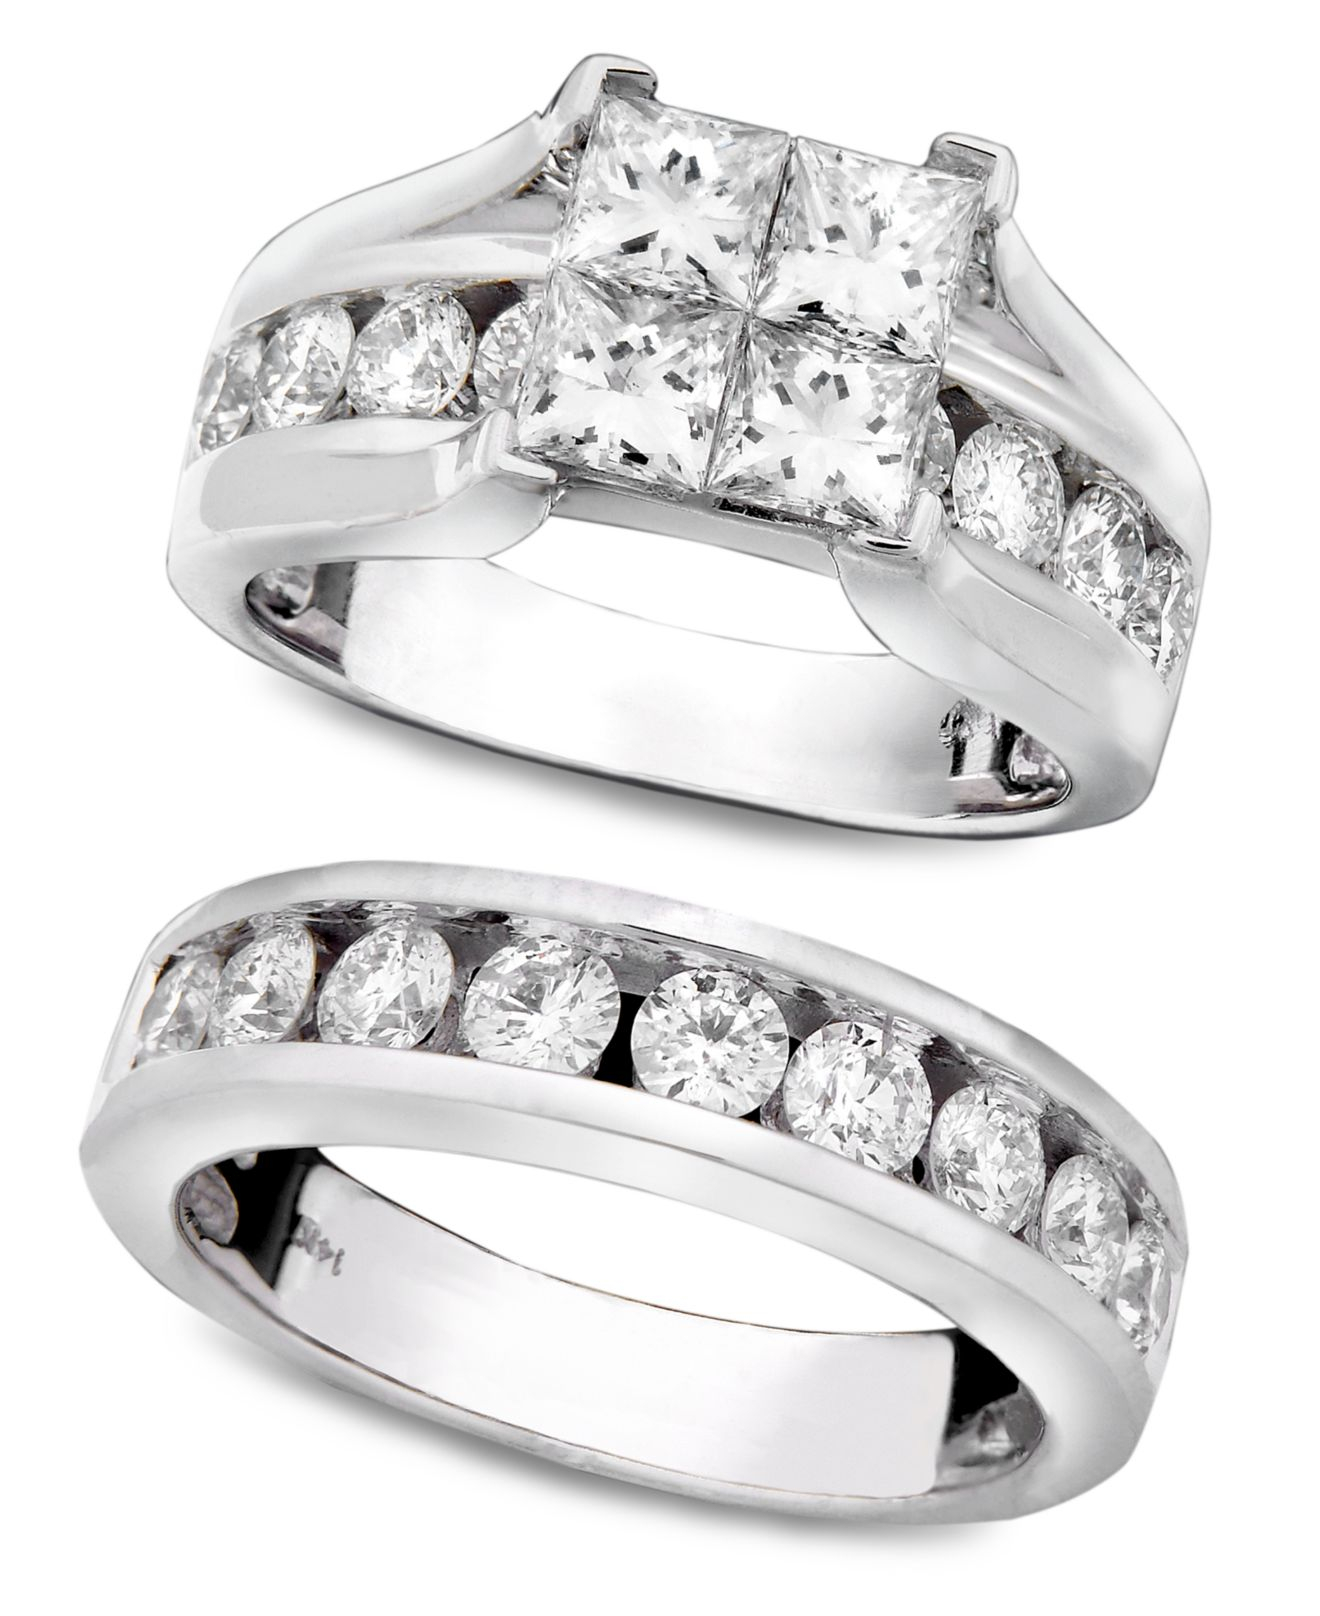 quad wedding forever bridal ideas of sets concept fresh rings sterling diamond silver w walmart carat bride t unique best